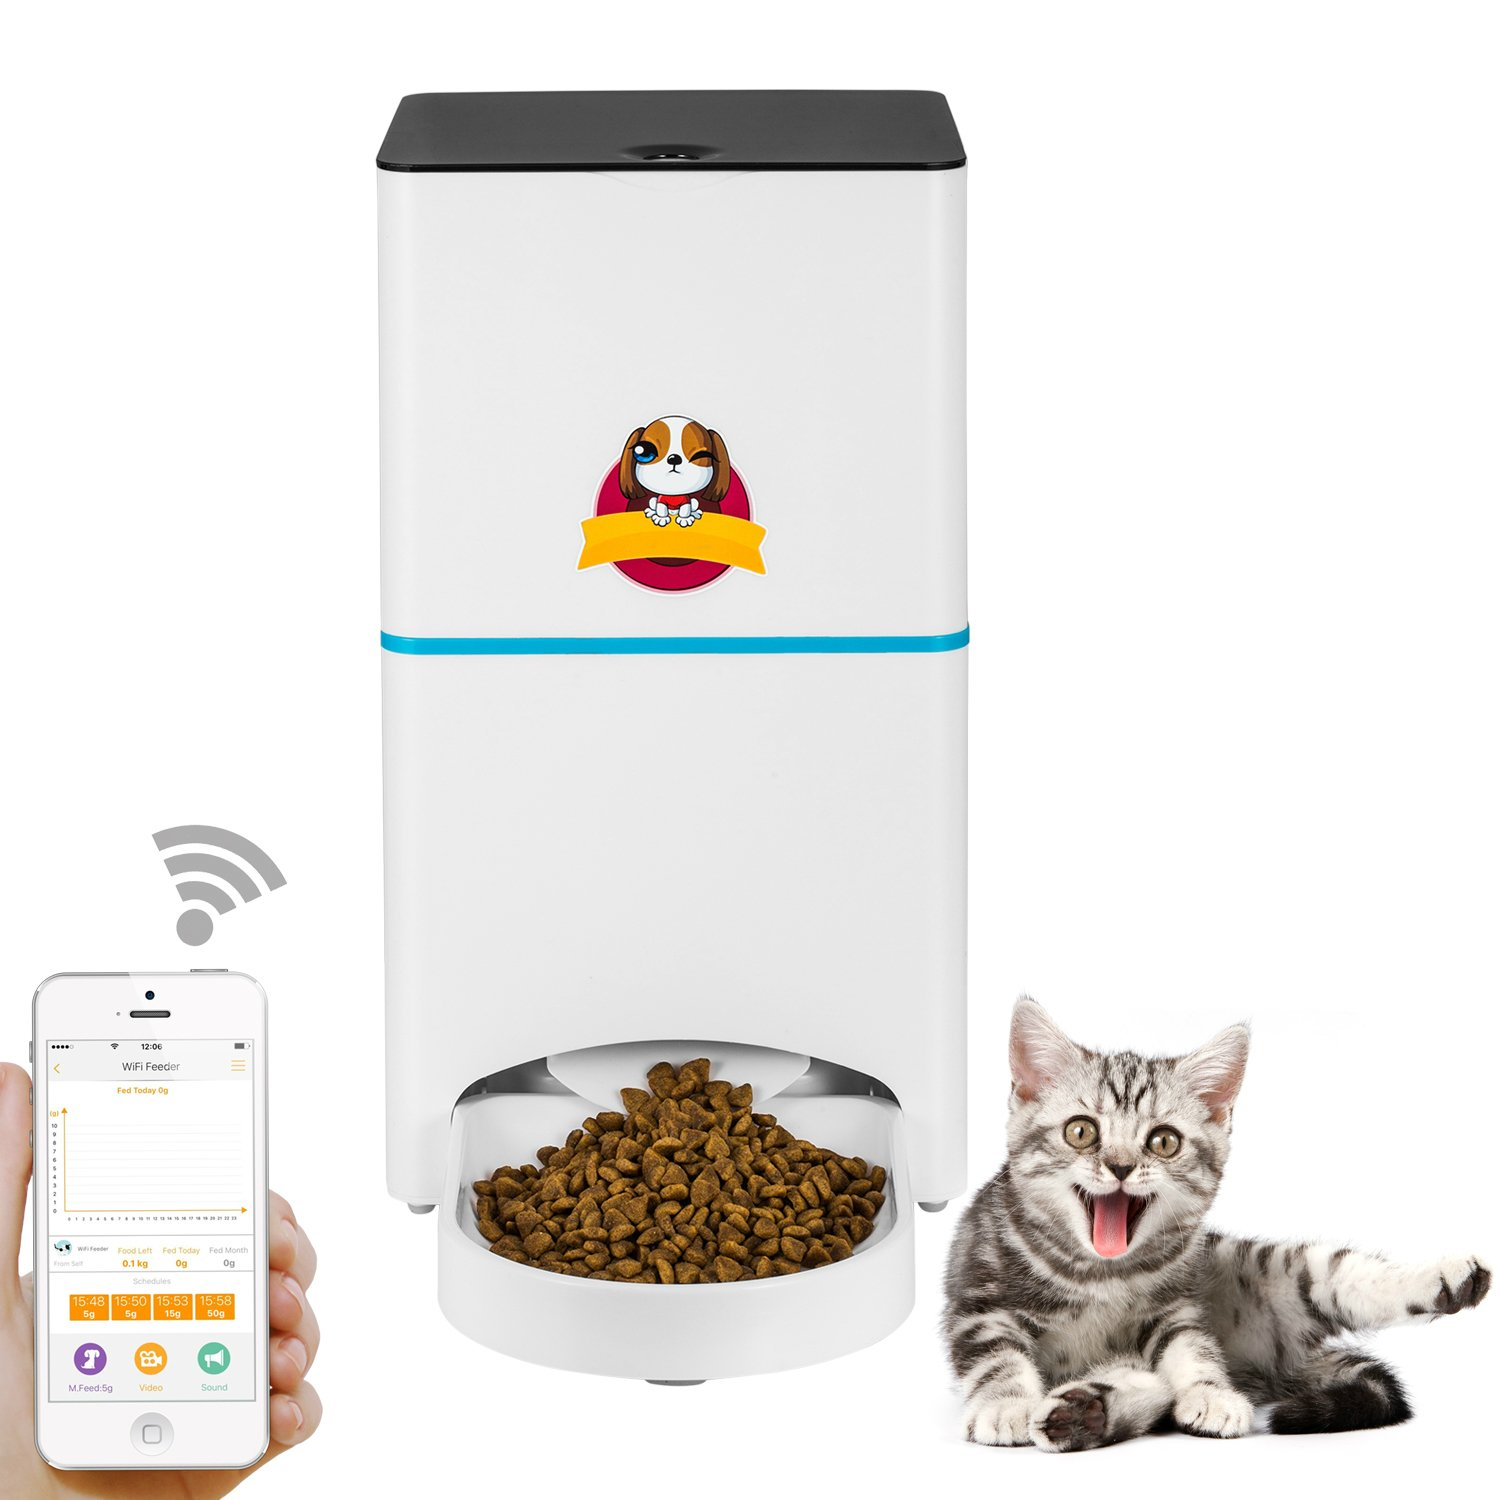 Abdtech Automatic Cat/Dog Feeder-2.4G Wifi Smart Pet Feeder Comes With An App To Control Feeding -1.2 Gallon Kibbles Hopper With Built-in Conveyor System-Automatically Provide Fresh And Healthy Meals